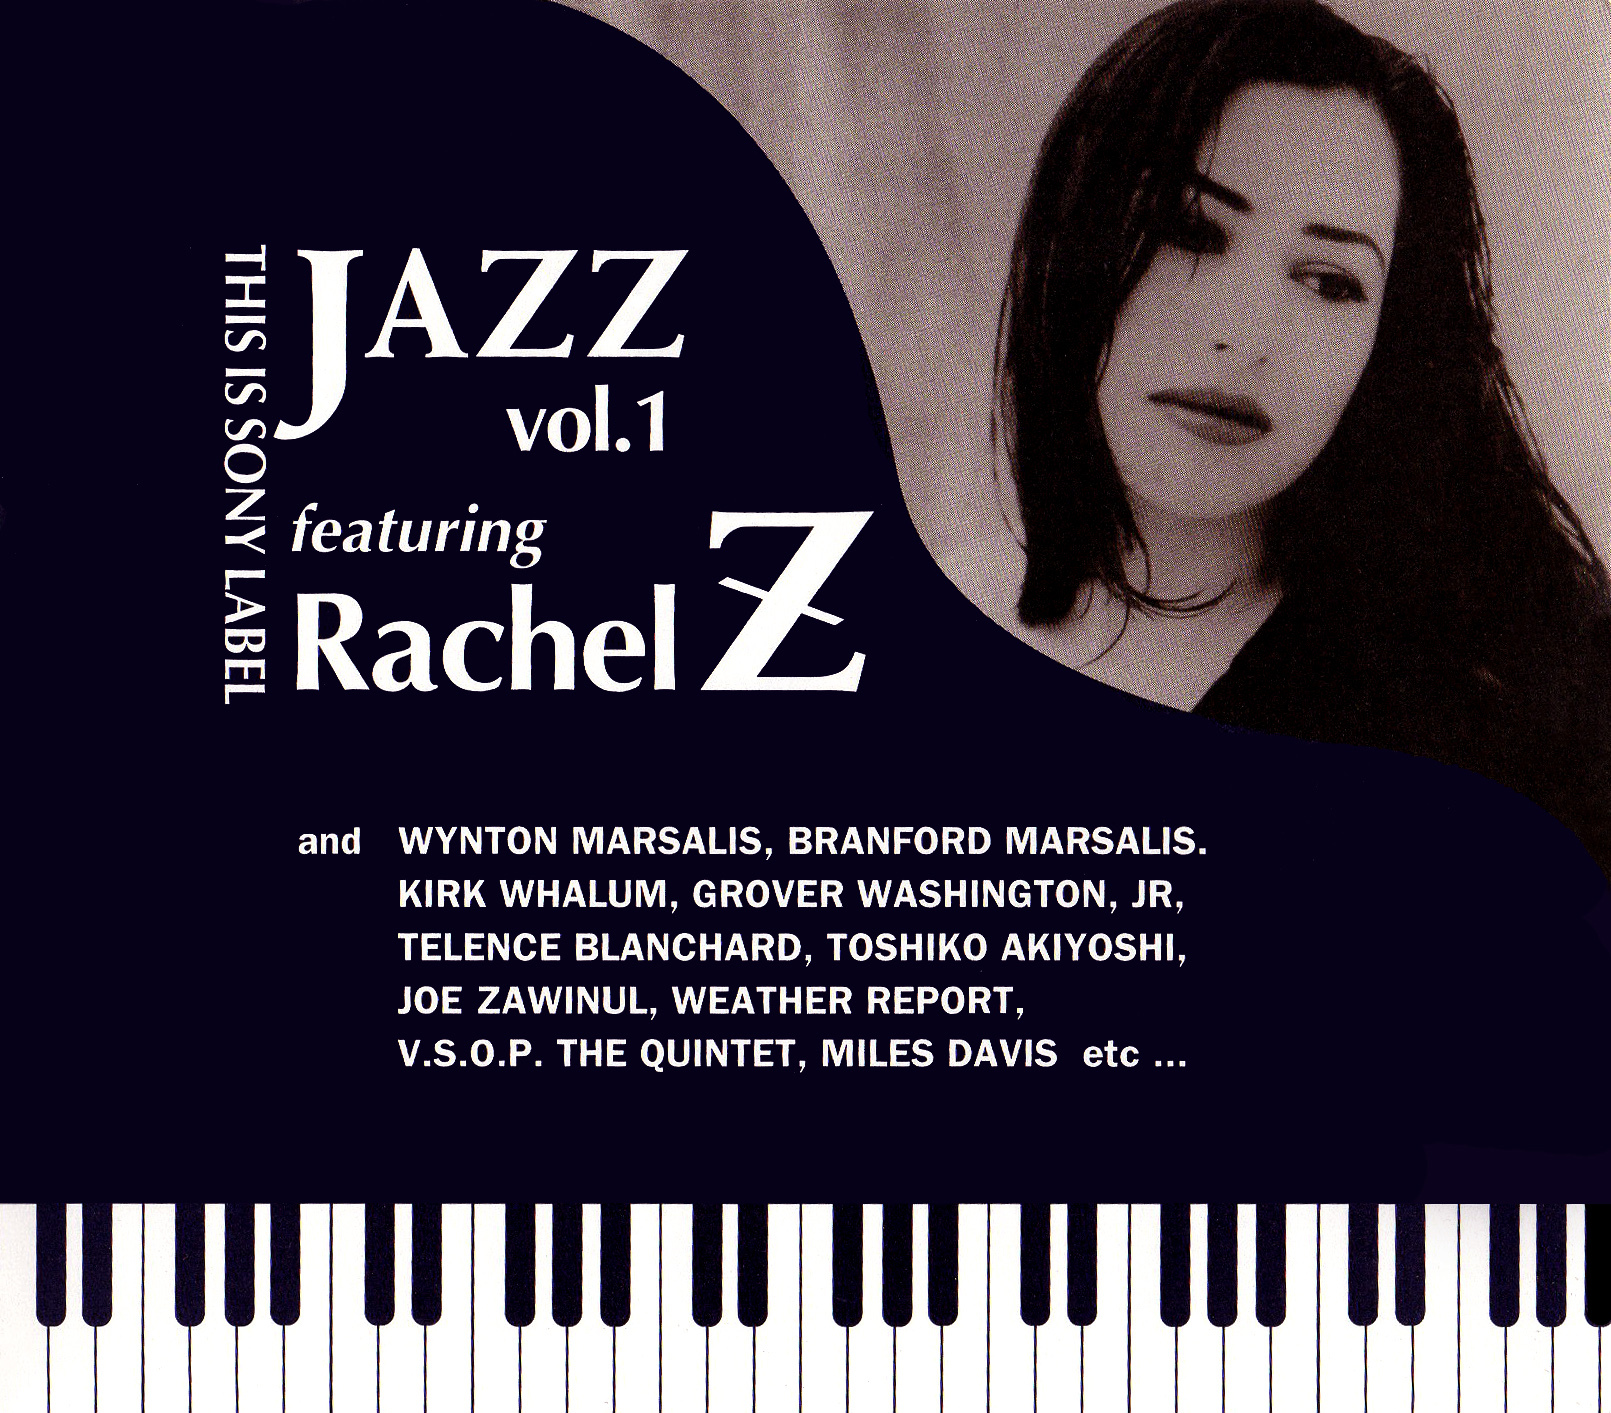 This Is Sony Label Jazz Vol.1 Featuring Rachel Z (非売品CD) 高画質ジャケット画像